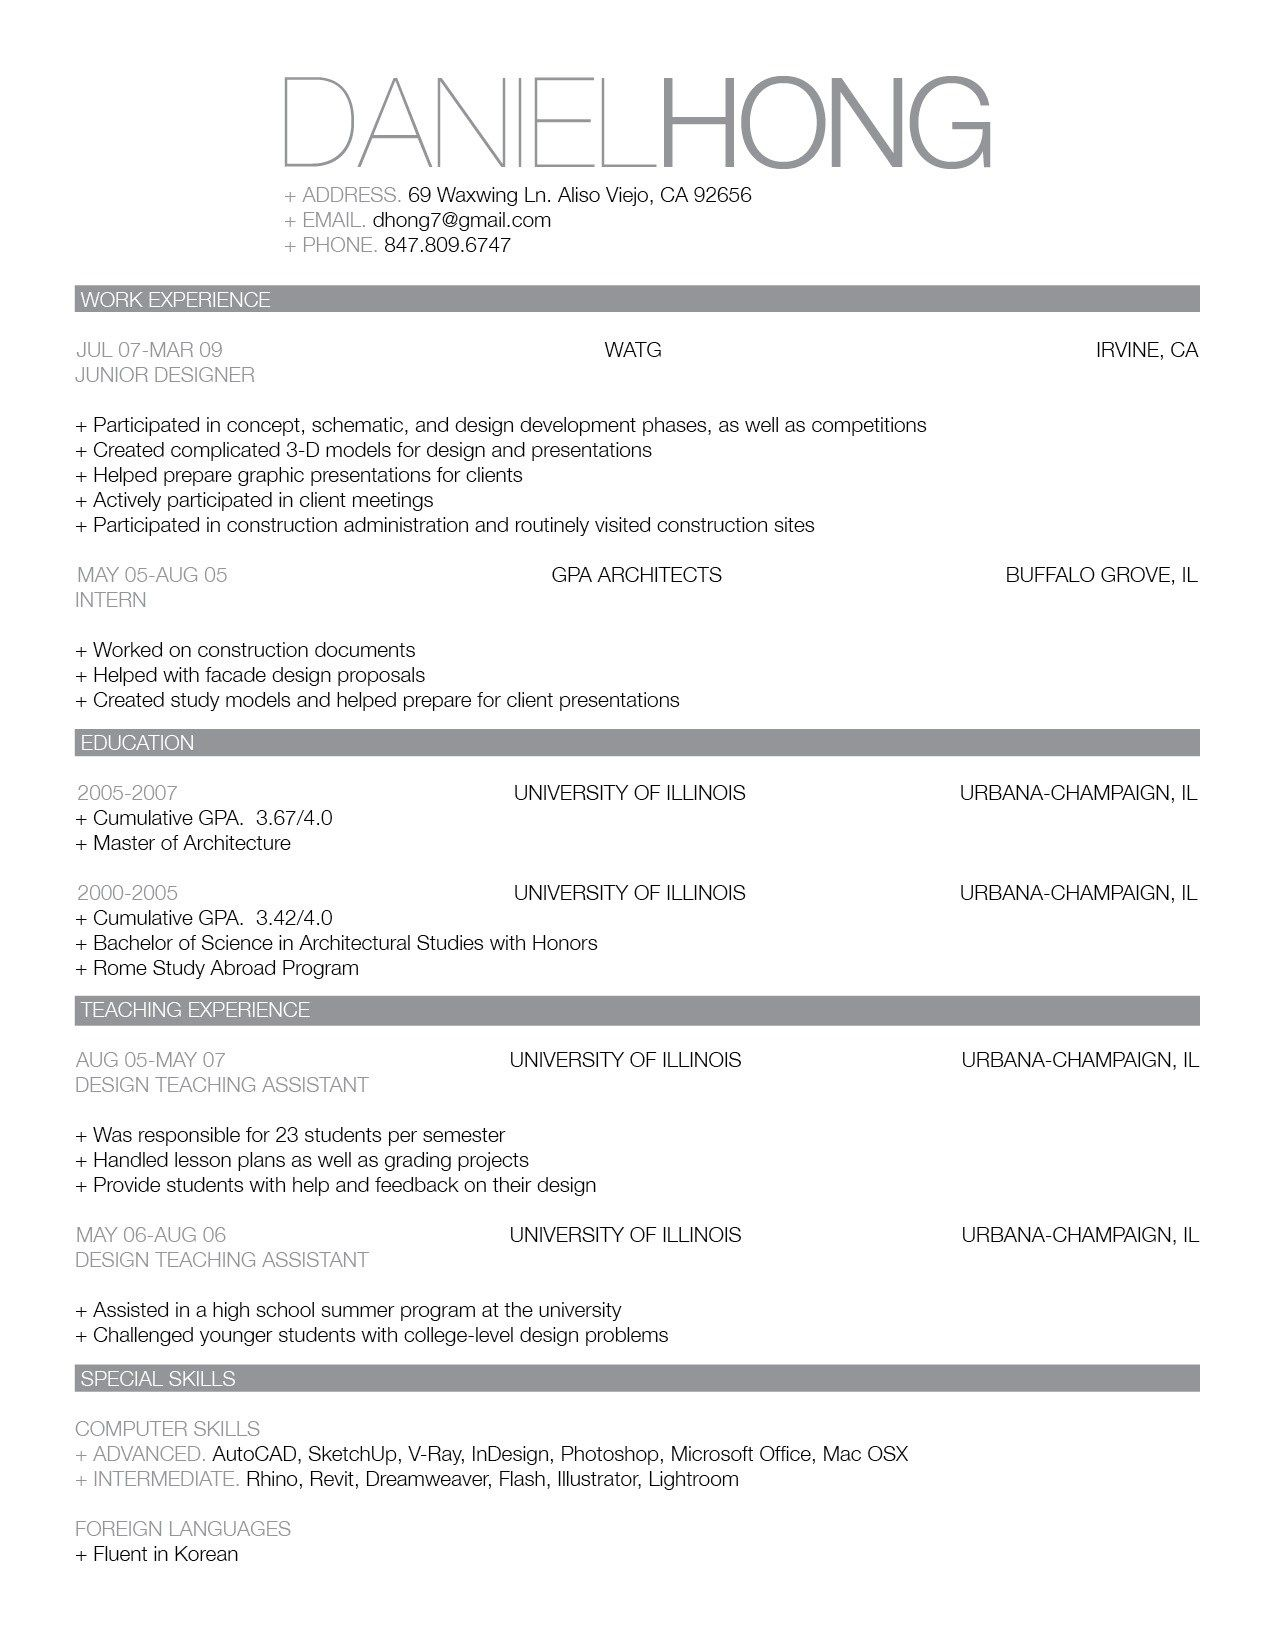 Teacher Aide Resume Teacher Aide Resume Examples Cover Letter Home Health Experiencedl